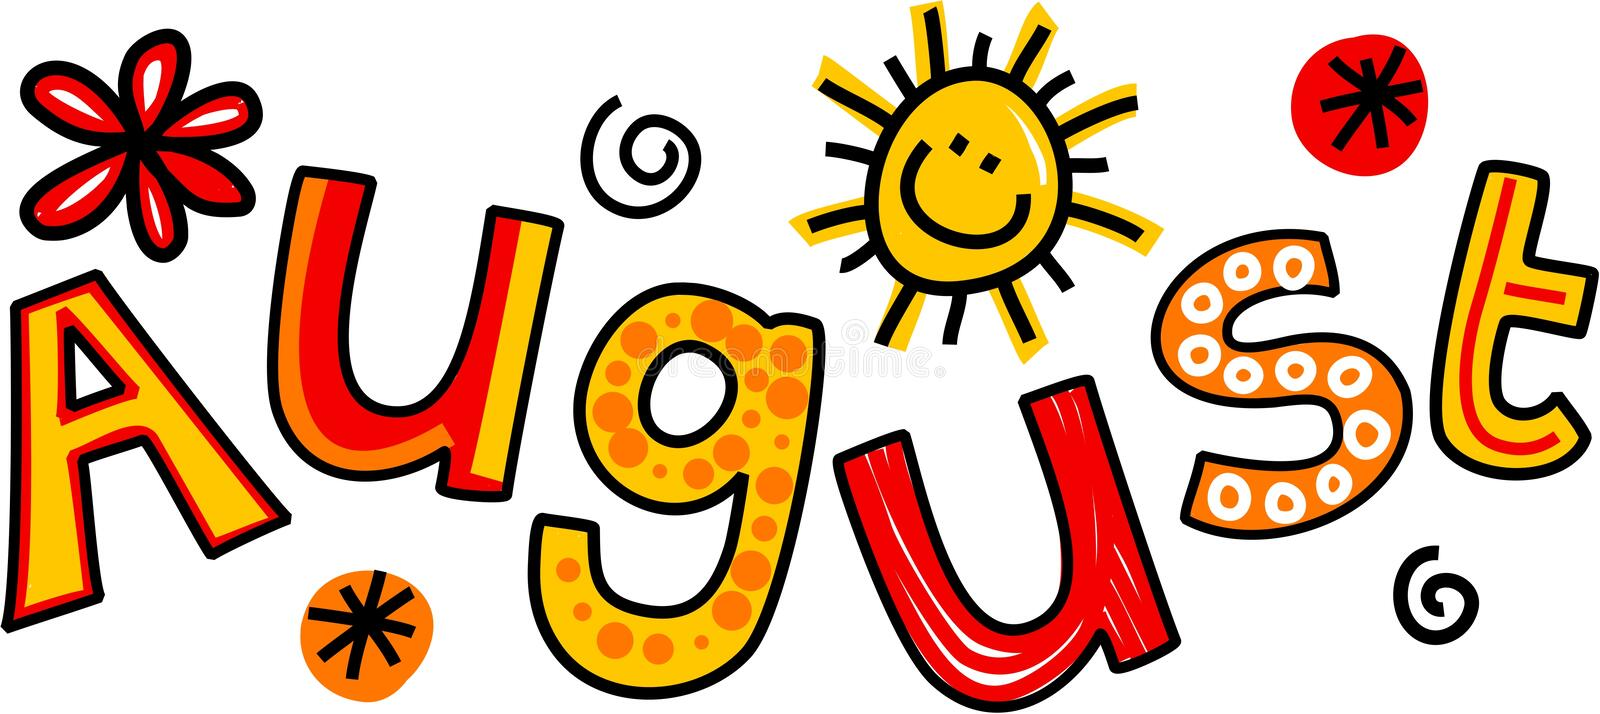 August Clip Art illustrazione di stock